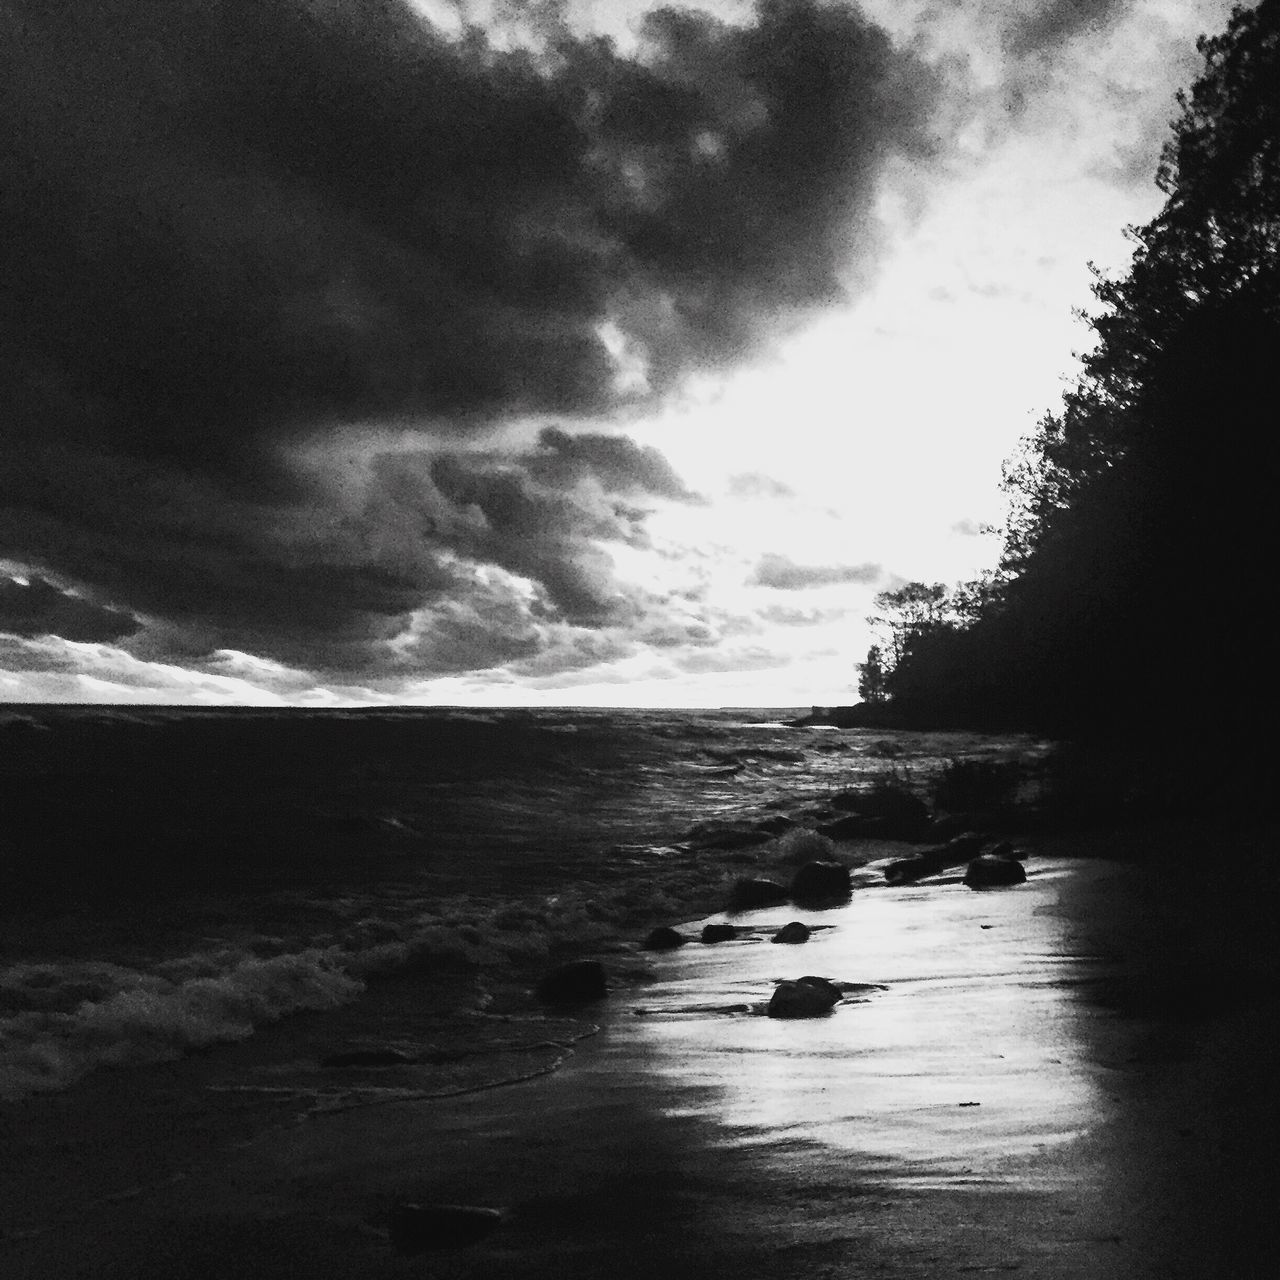 Baltic Sea Water Sea Tranquility Tranquil Scene Horizon Over Water Sky Scenics Beach Calm Cloud Cloud - Sky Nature Beauty In Nature Shore Coastline Cloudy Outdoors Remote Solitude Day Blackandwhite Photography Black & White Monochrome Monochromatic